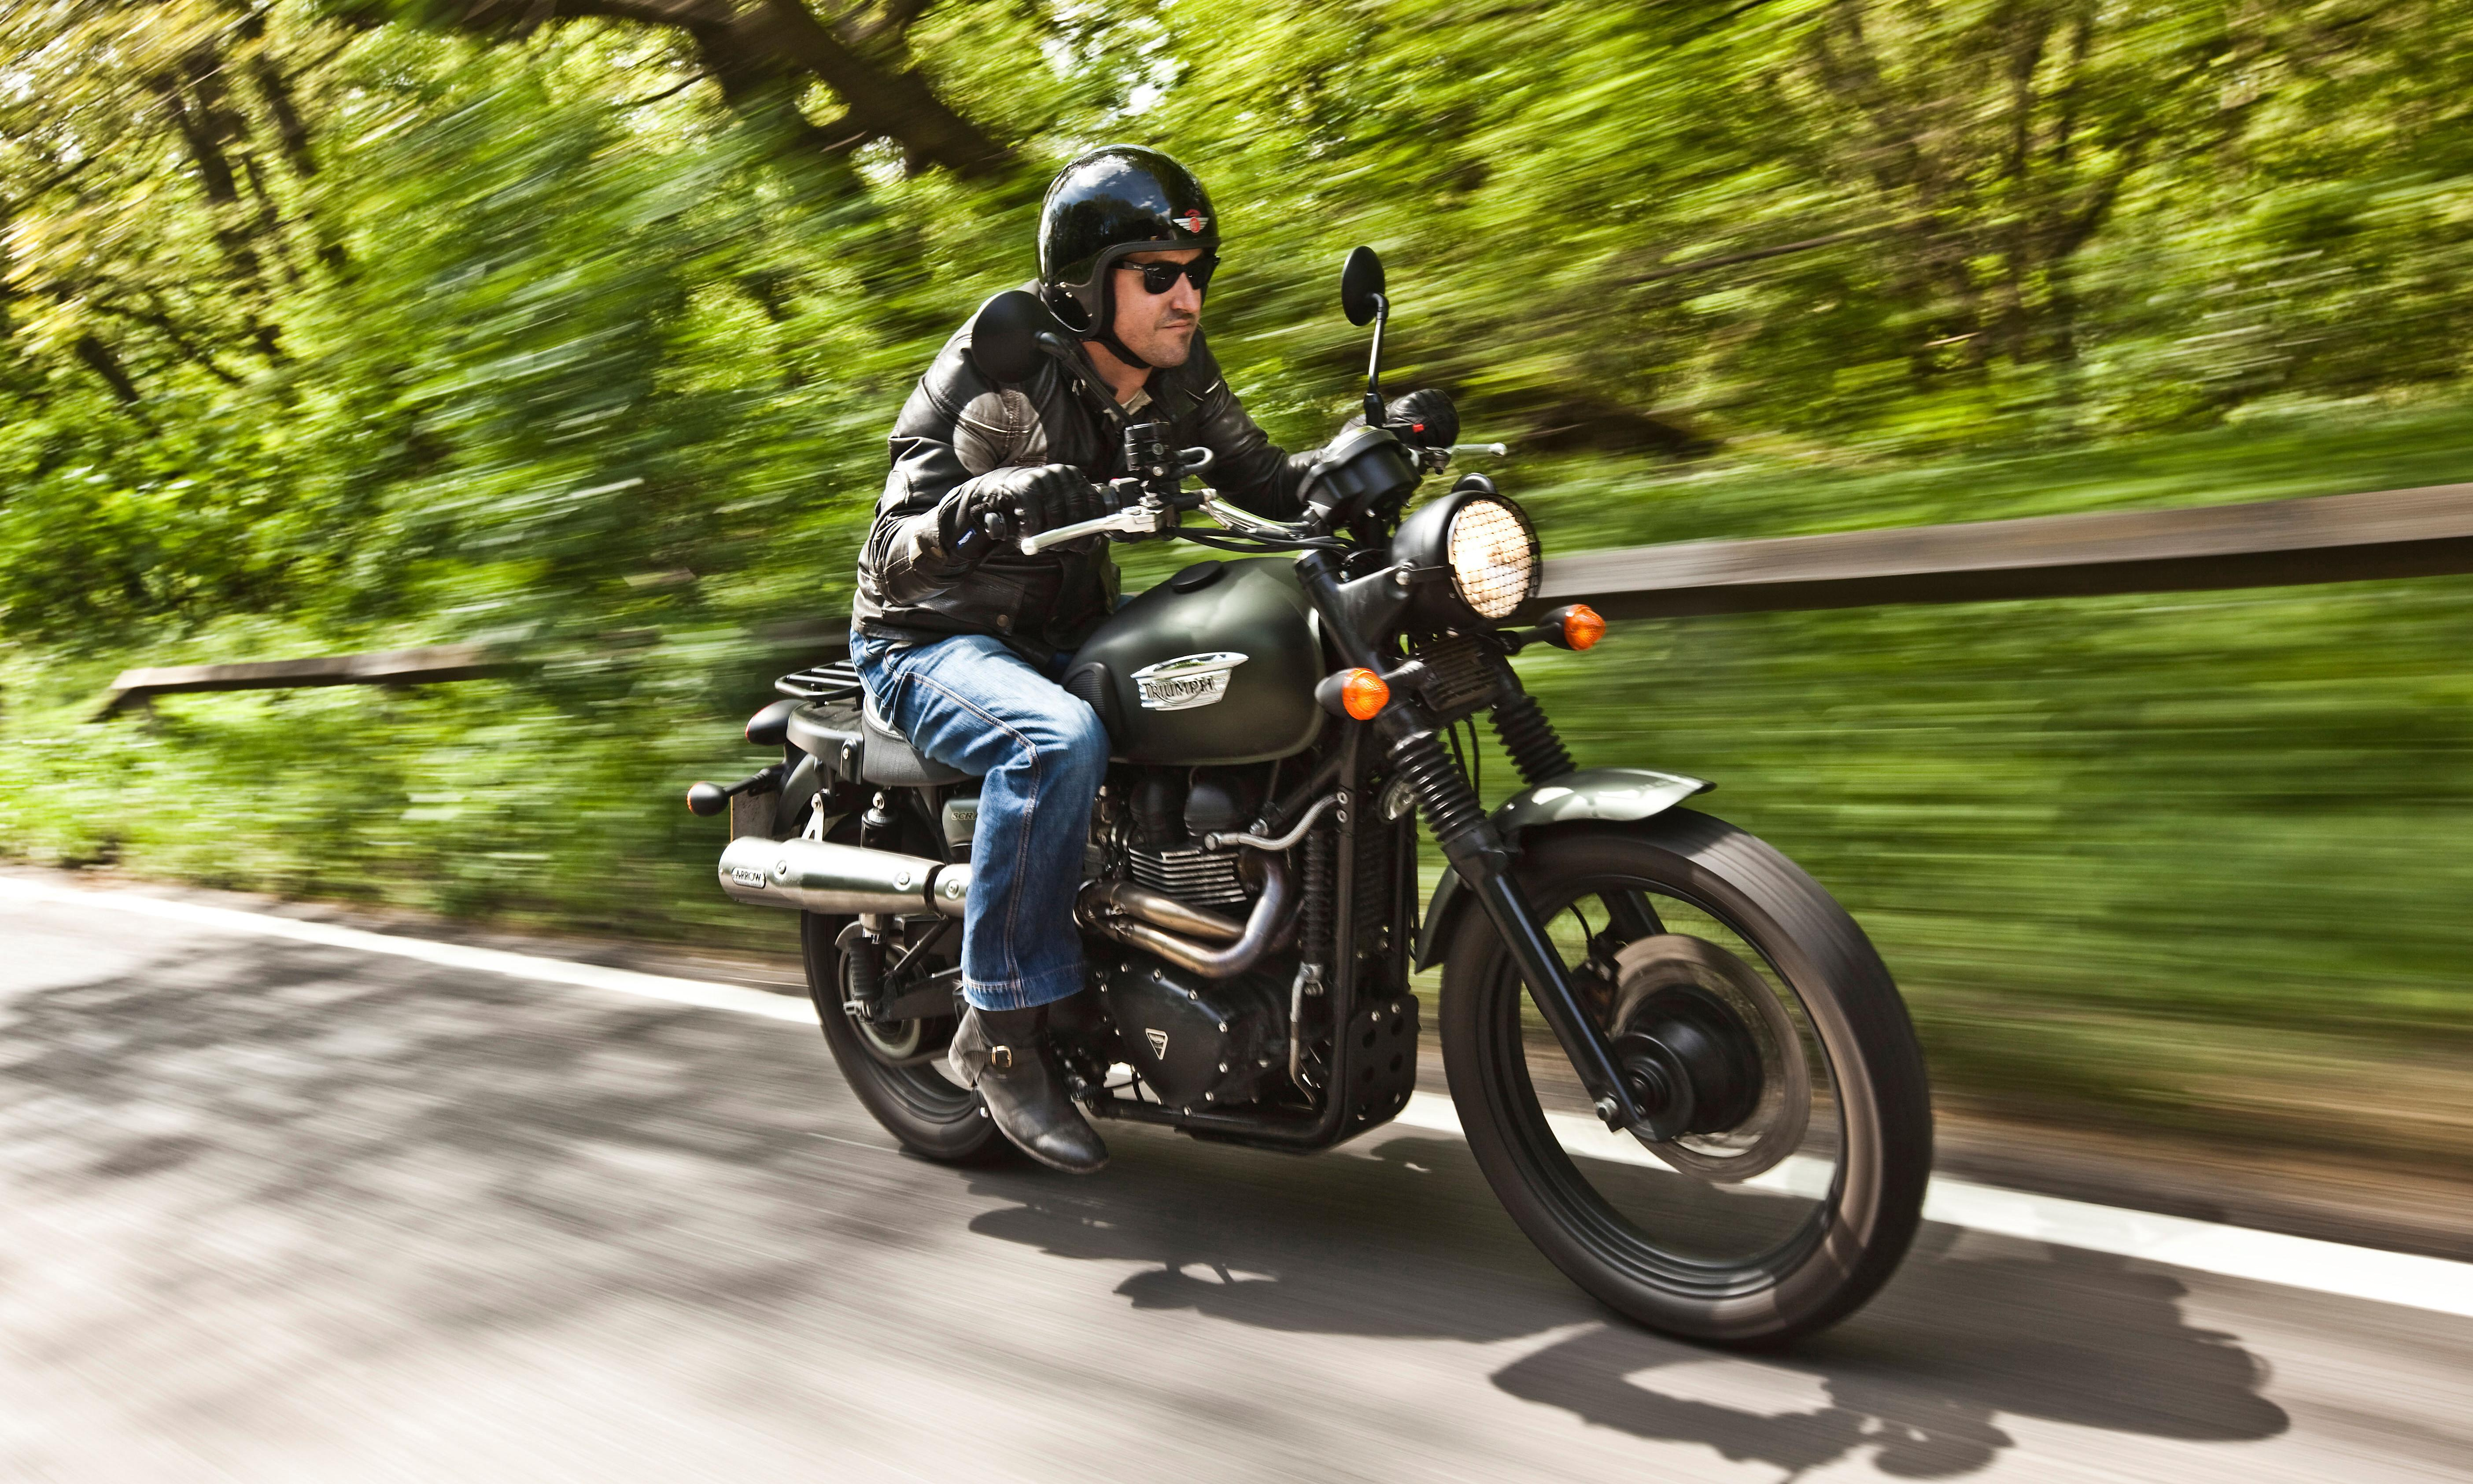 I thought bikers were noisy and angry – until I had a midlife crisis and became one